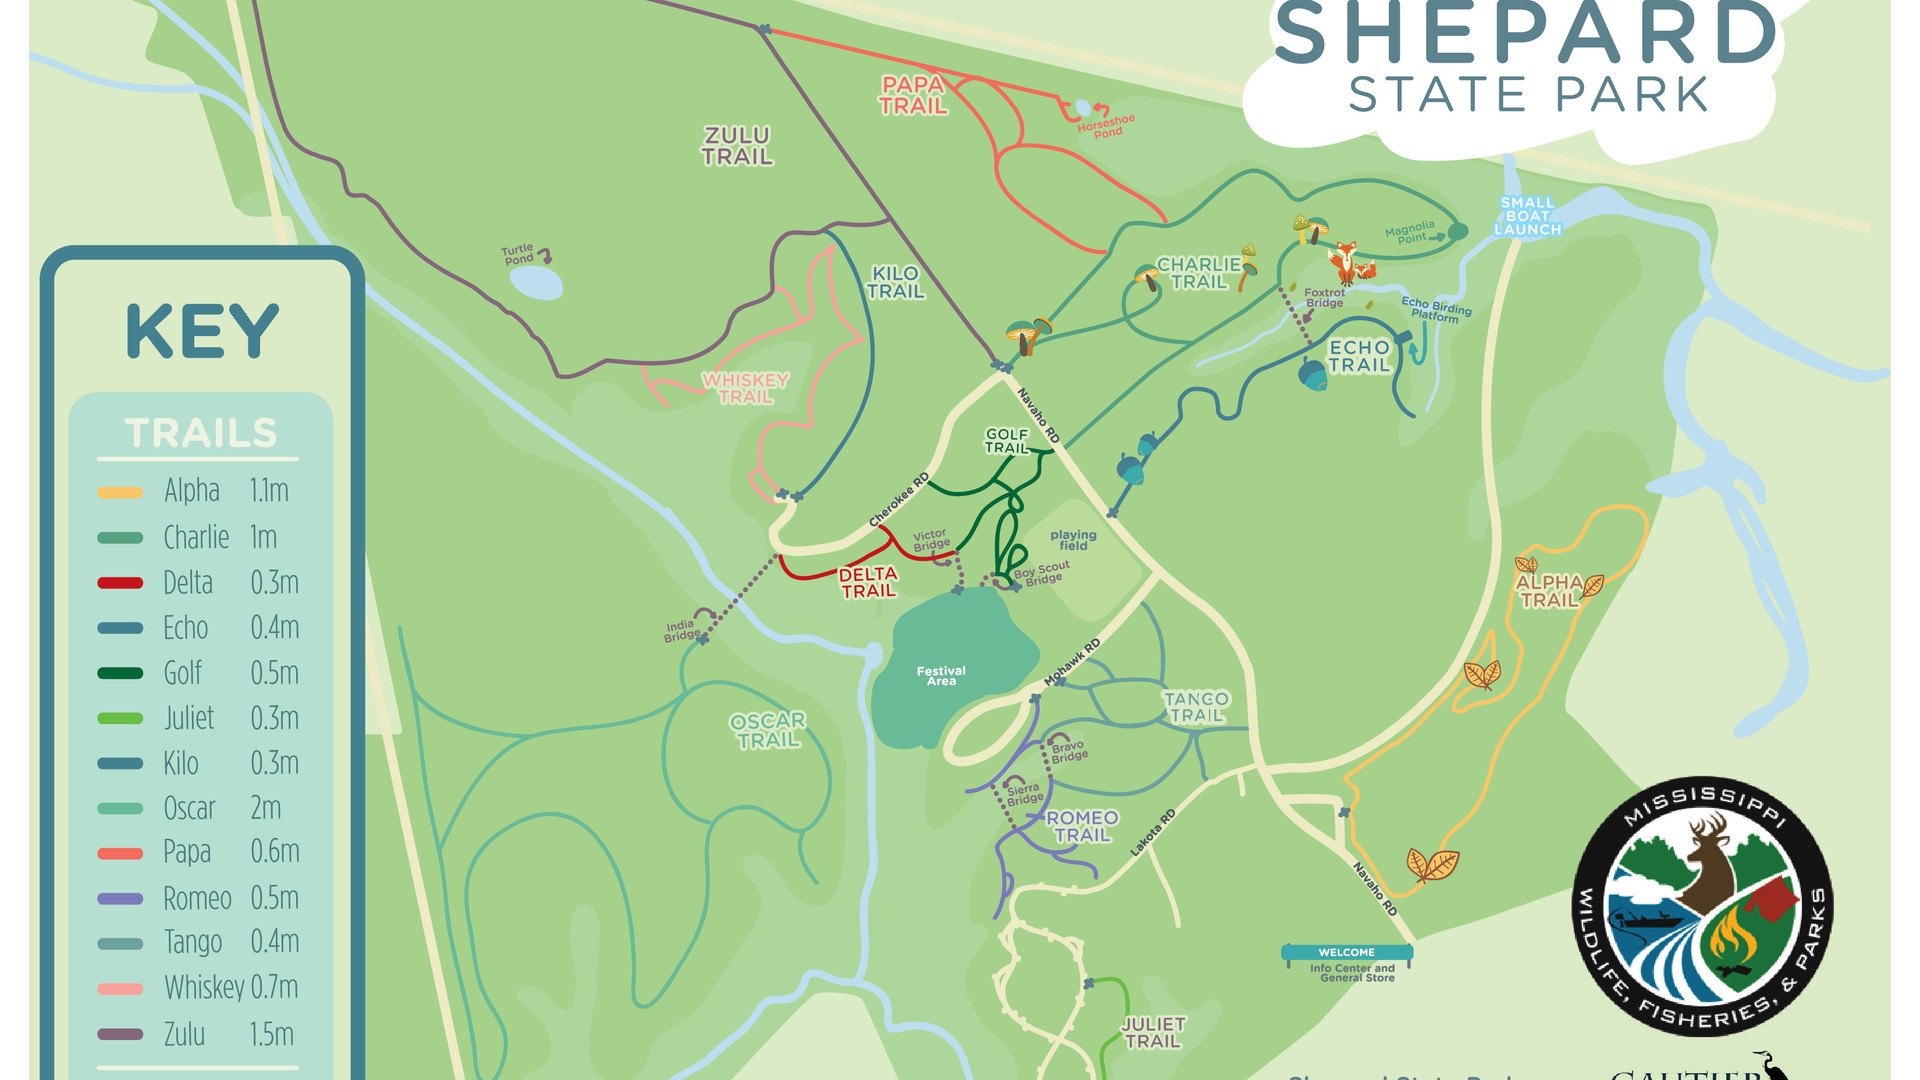 Shepard State Park Trail Details